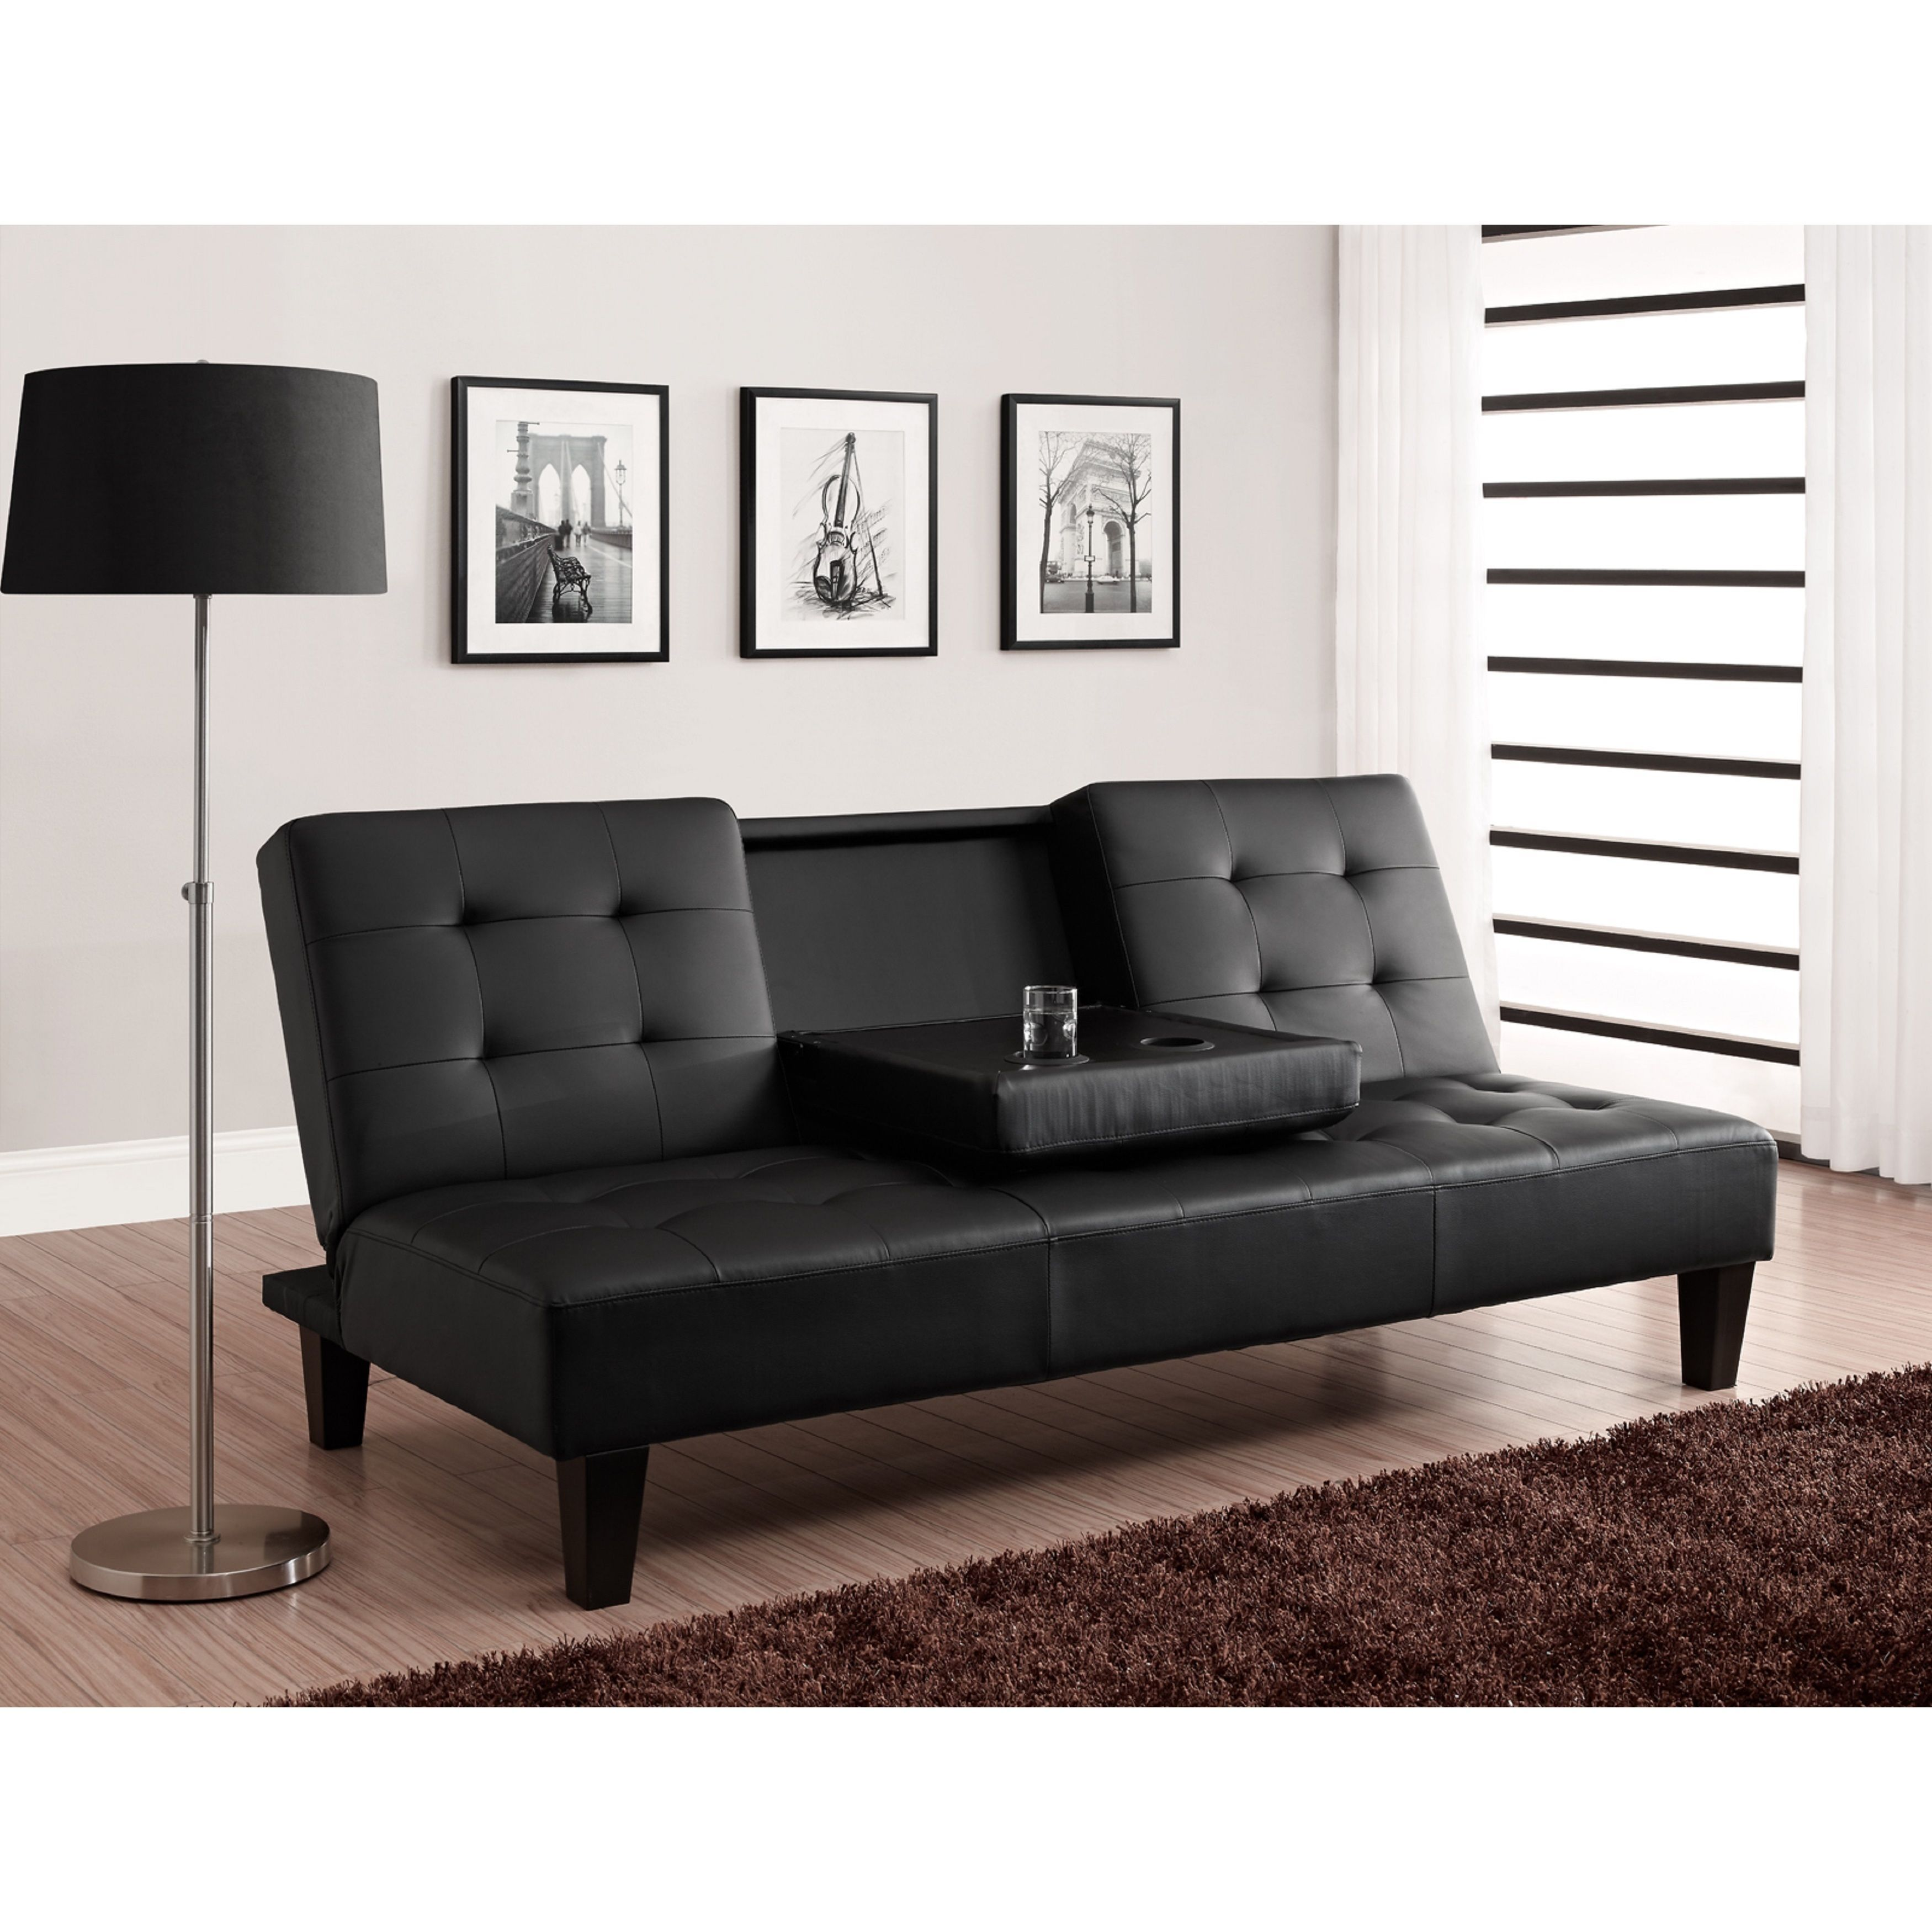 back furniture to bed futon sofa best home decor ideas comforter comfortable